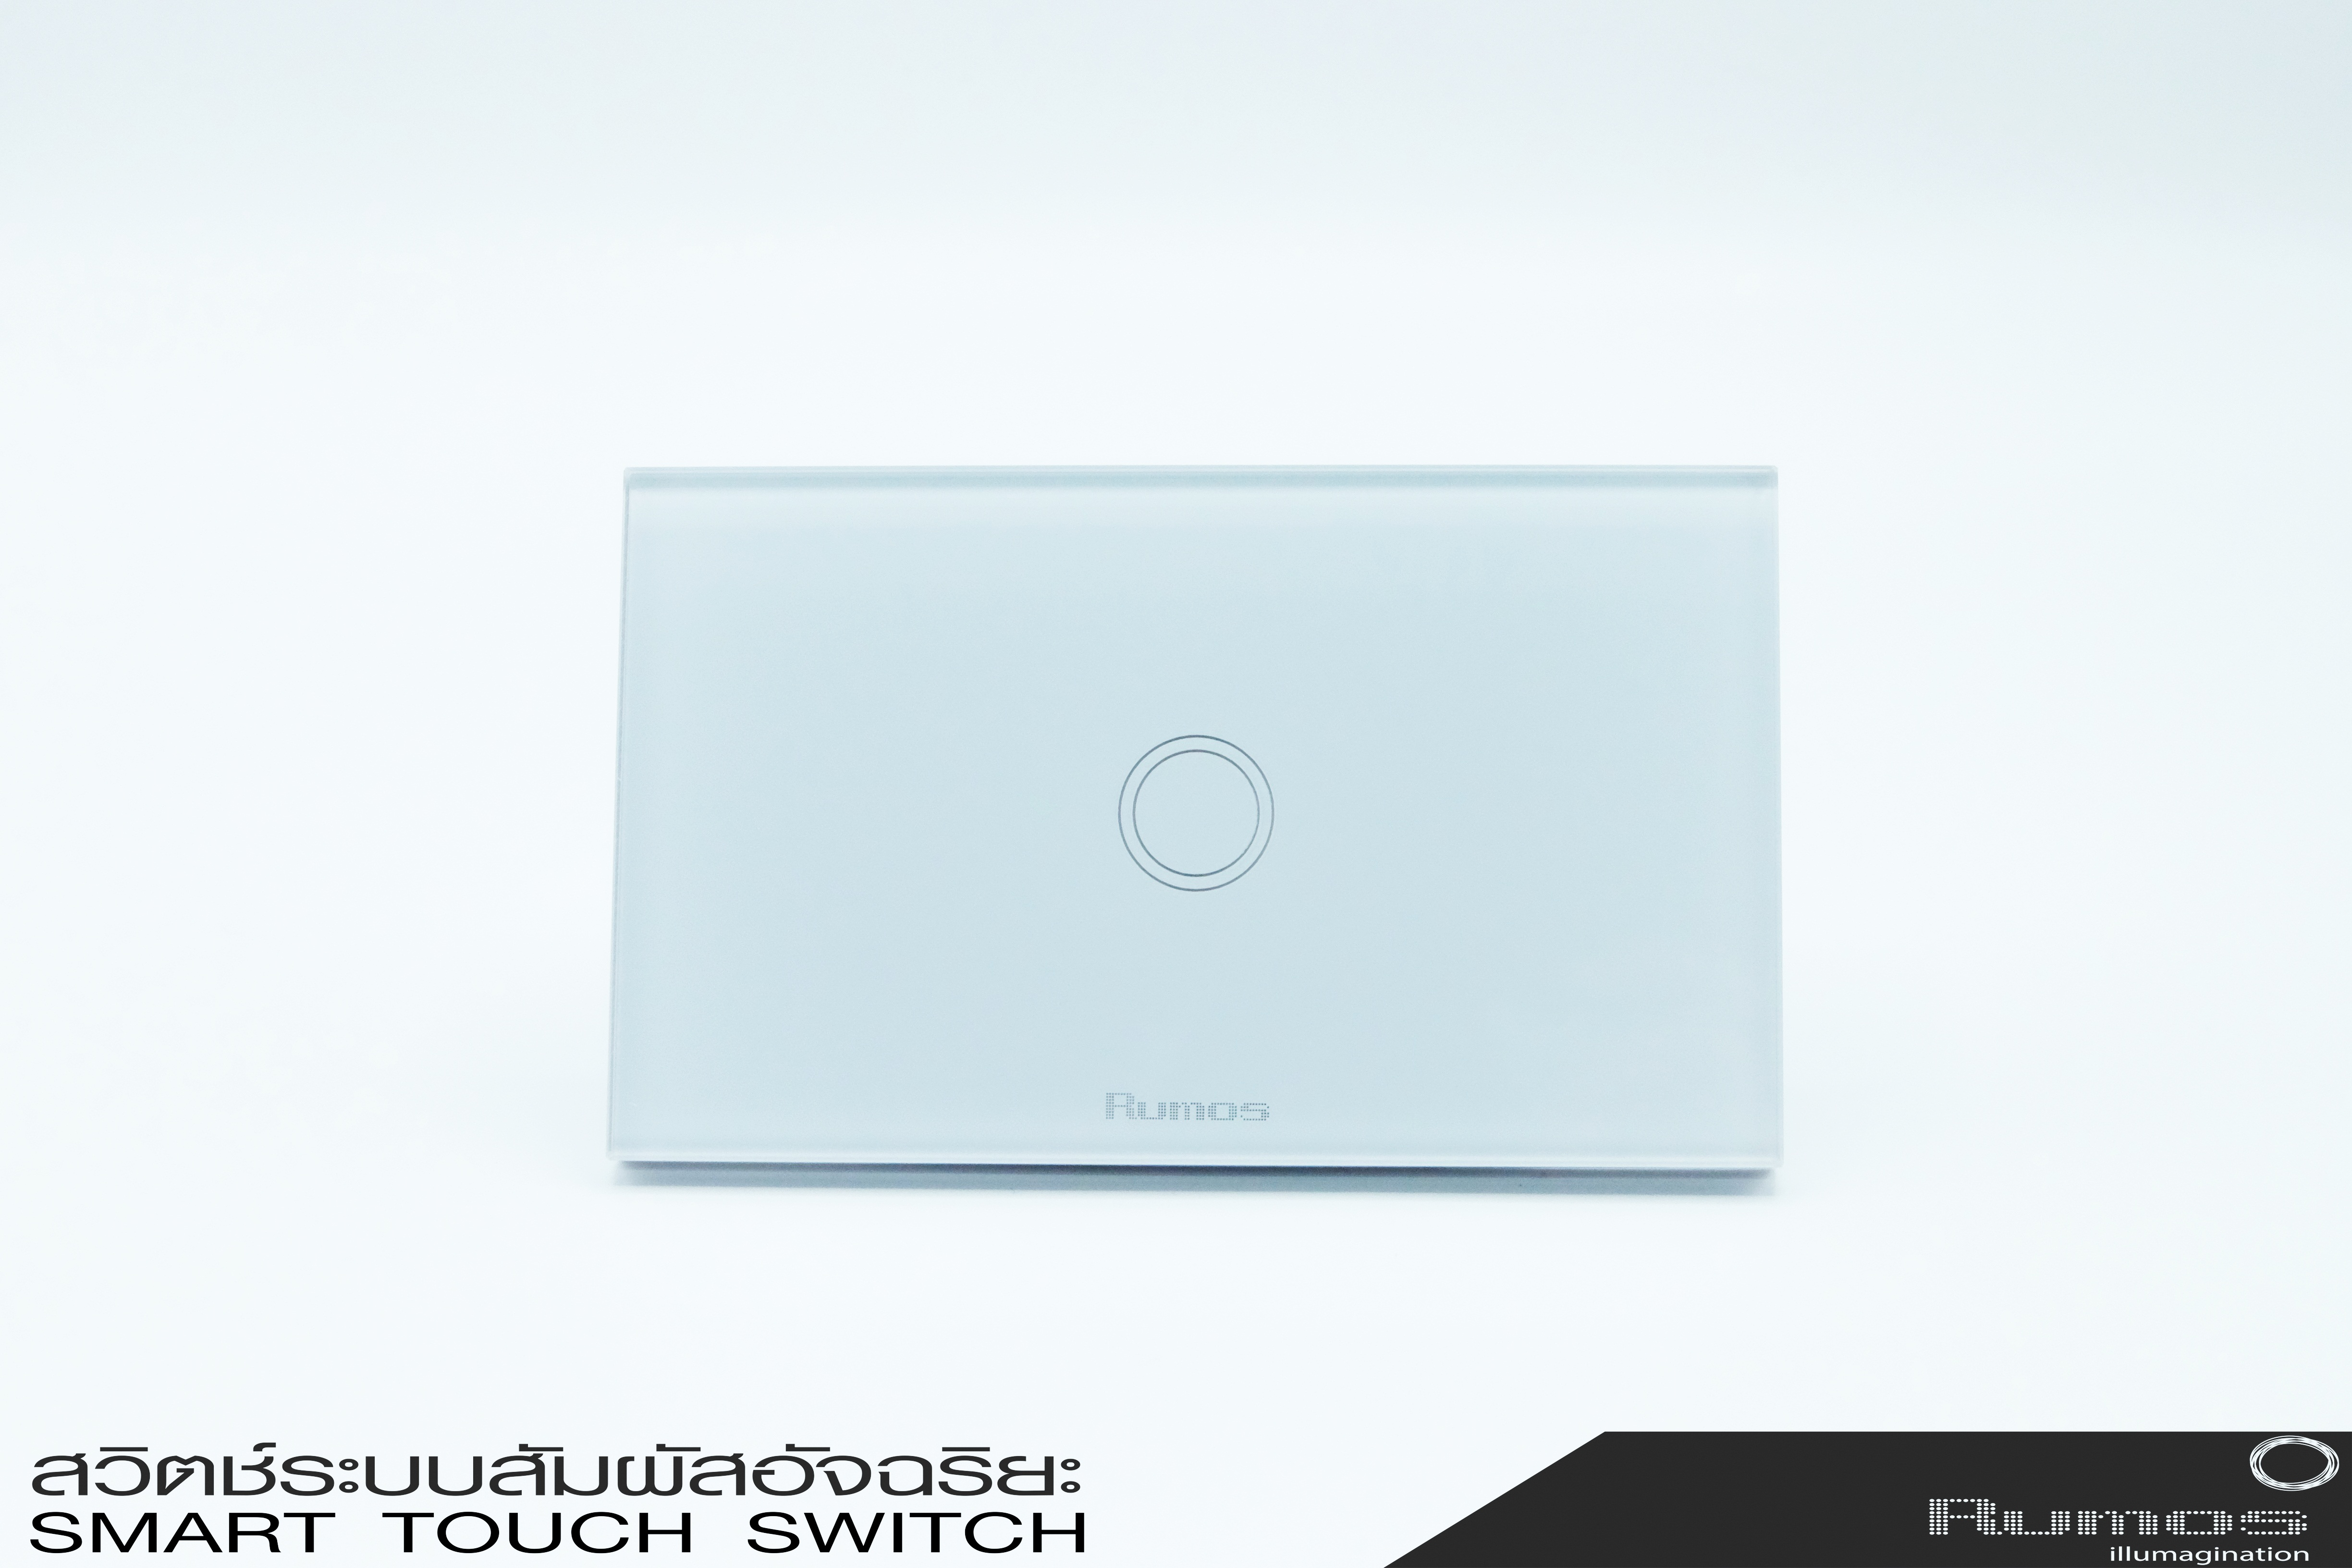 Rumos touch switch 1gang 1 way white with remote function